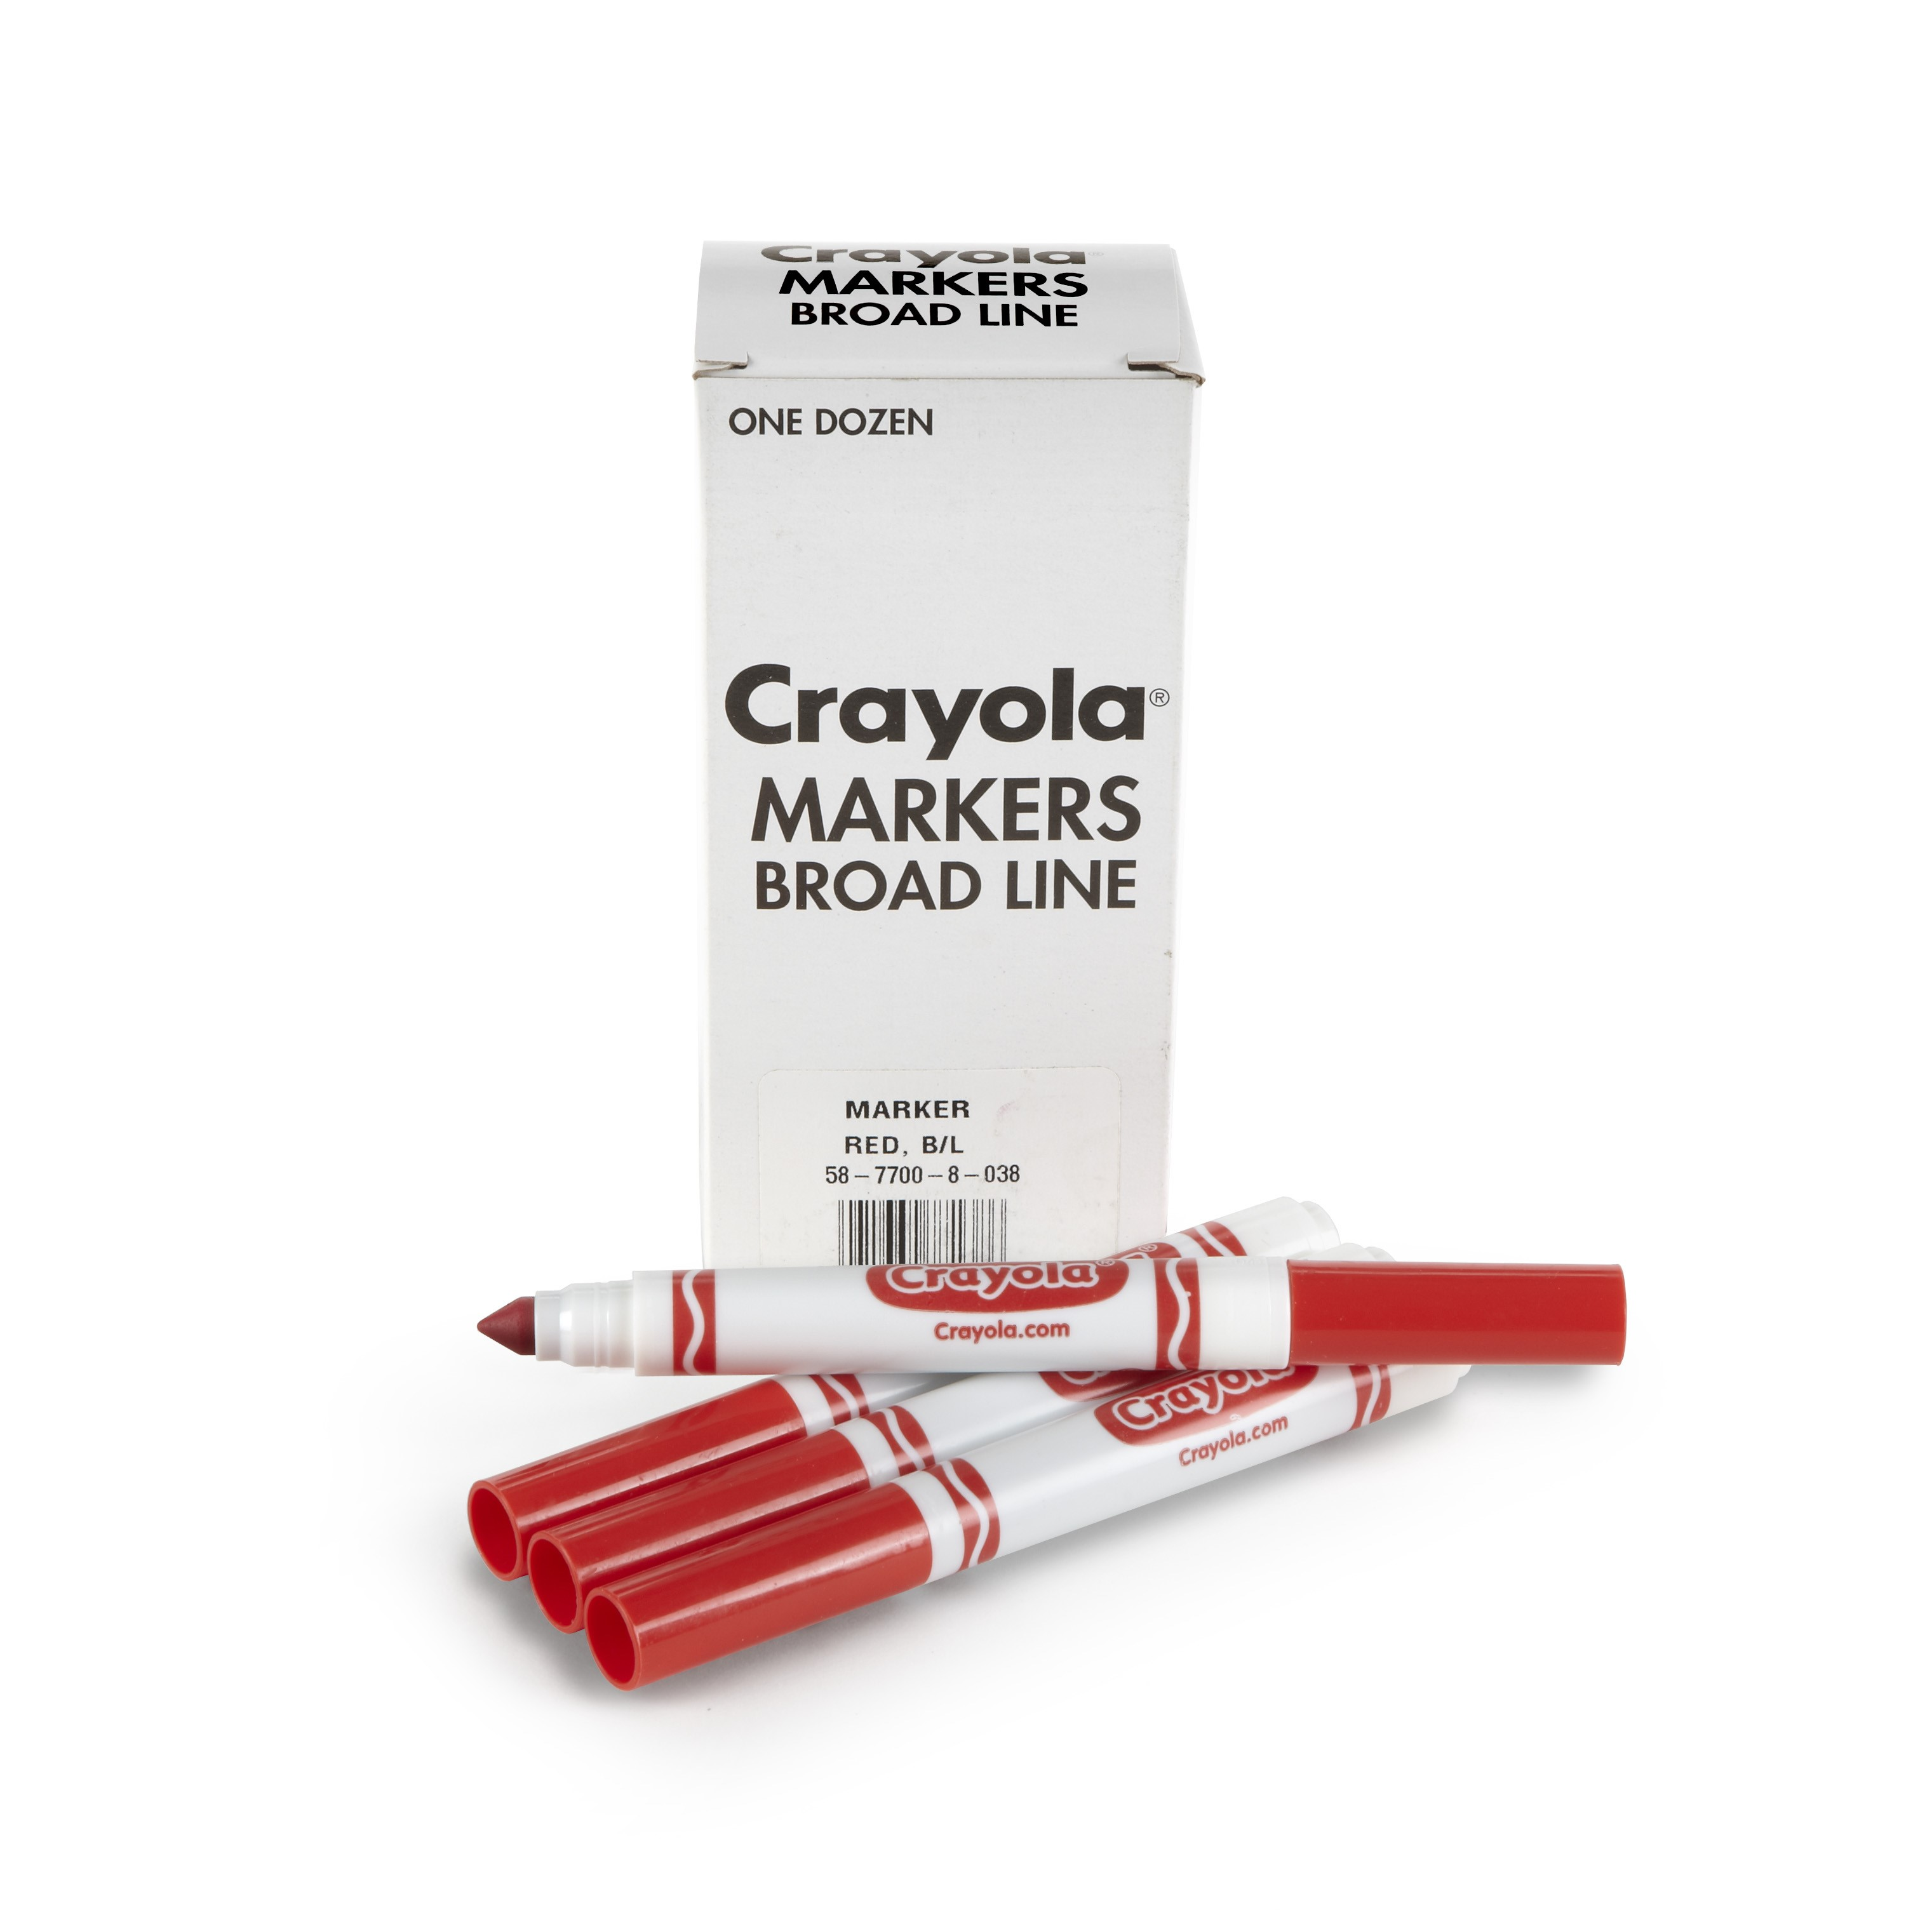 Crayola 12 Count Original Bulk Markers, Red 58-7700-038 by Supplier Generic